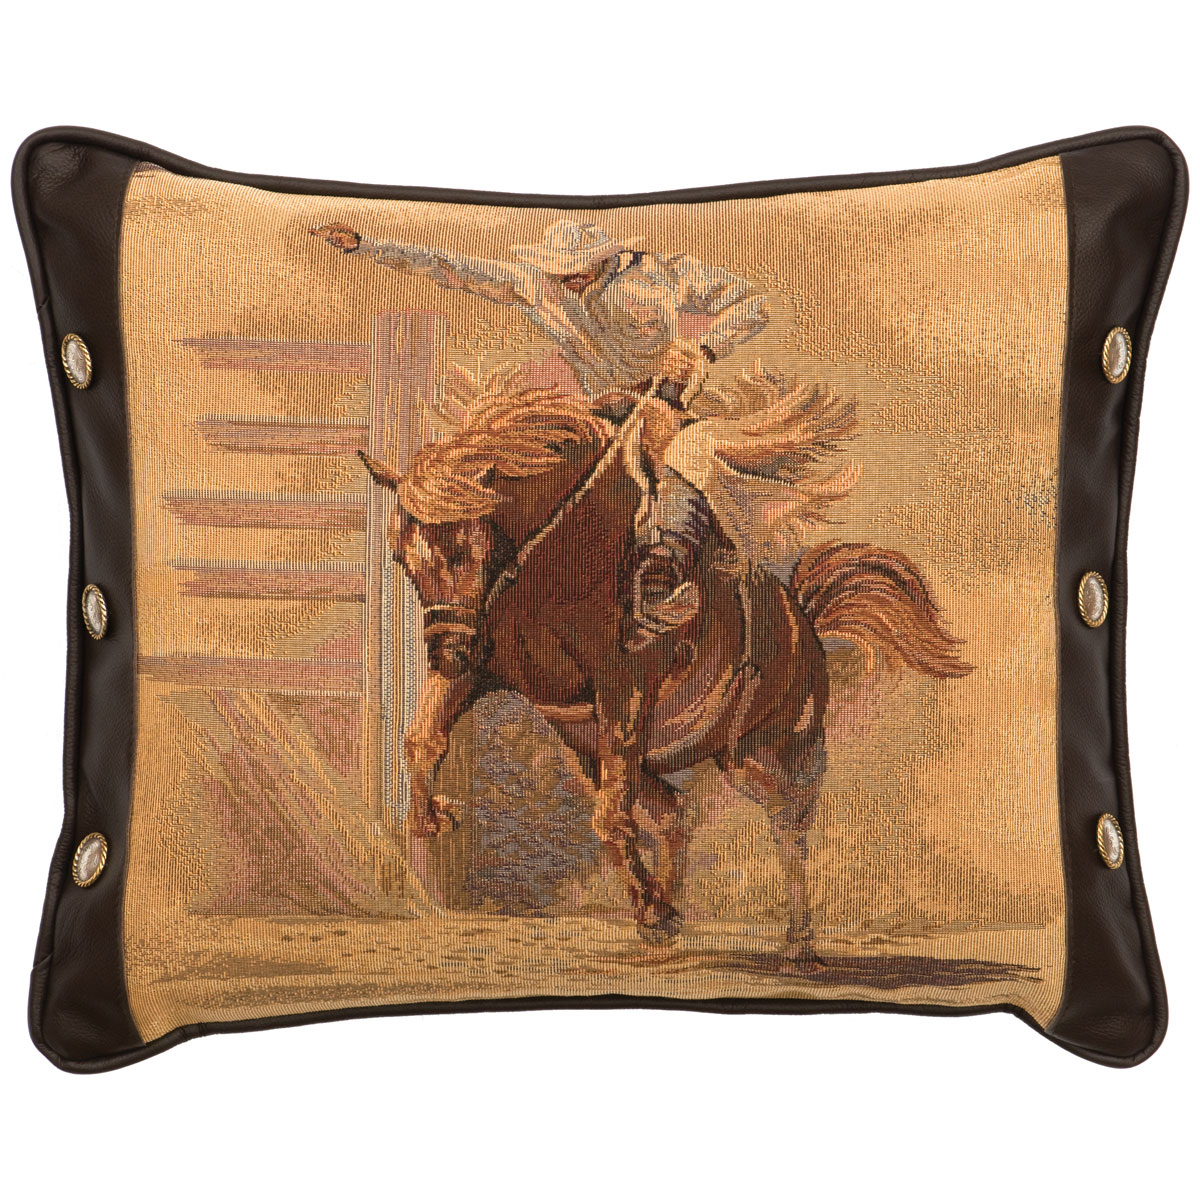 Tombstone III Bronco Rider Pillow with Fabric Back